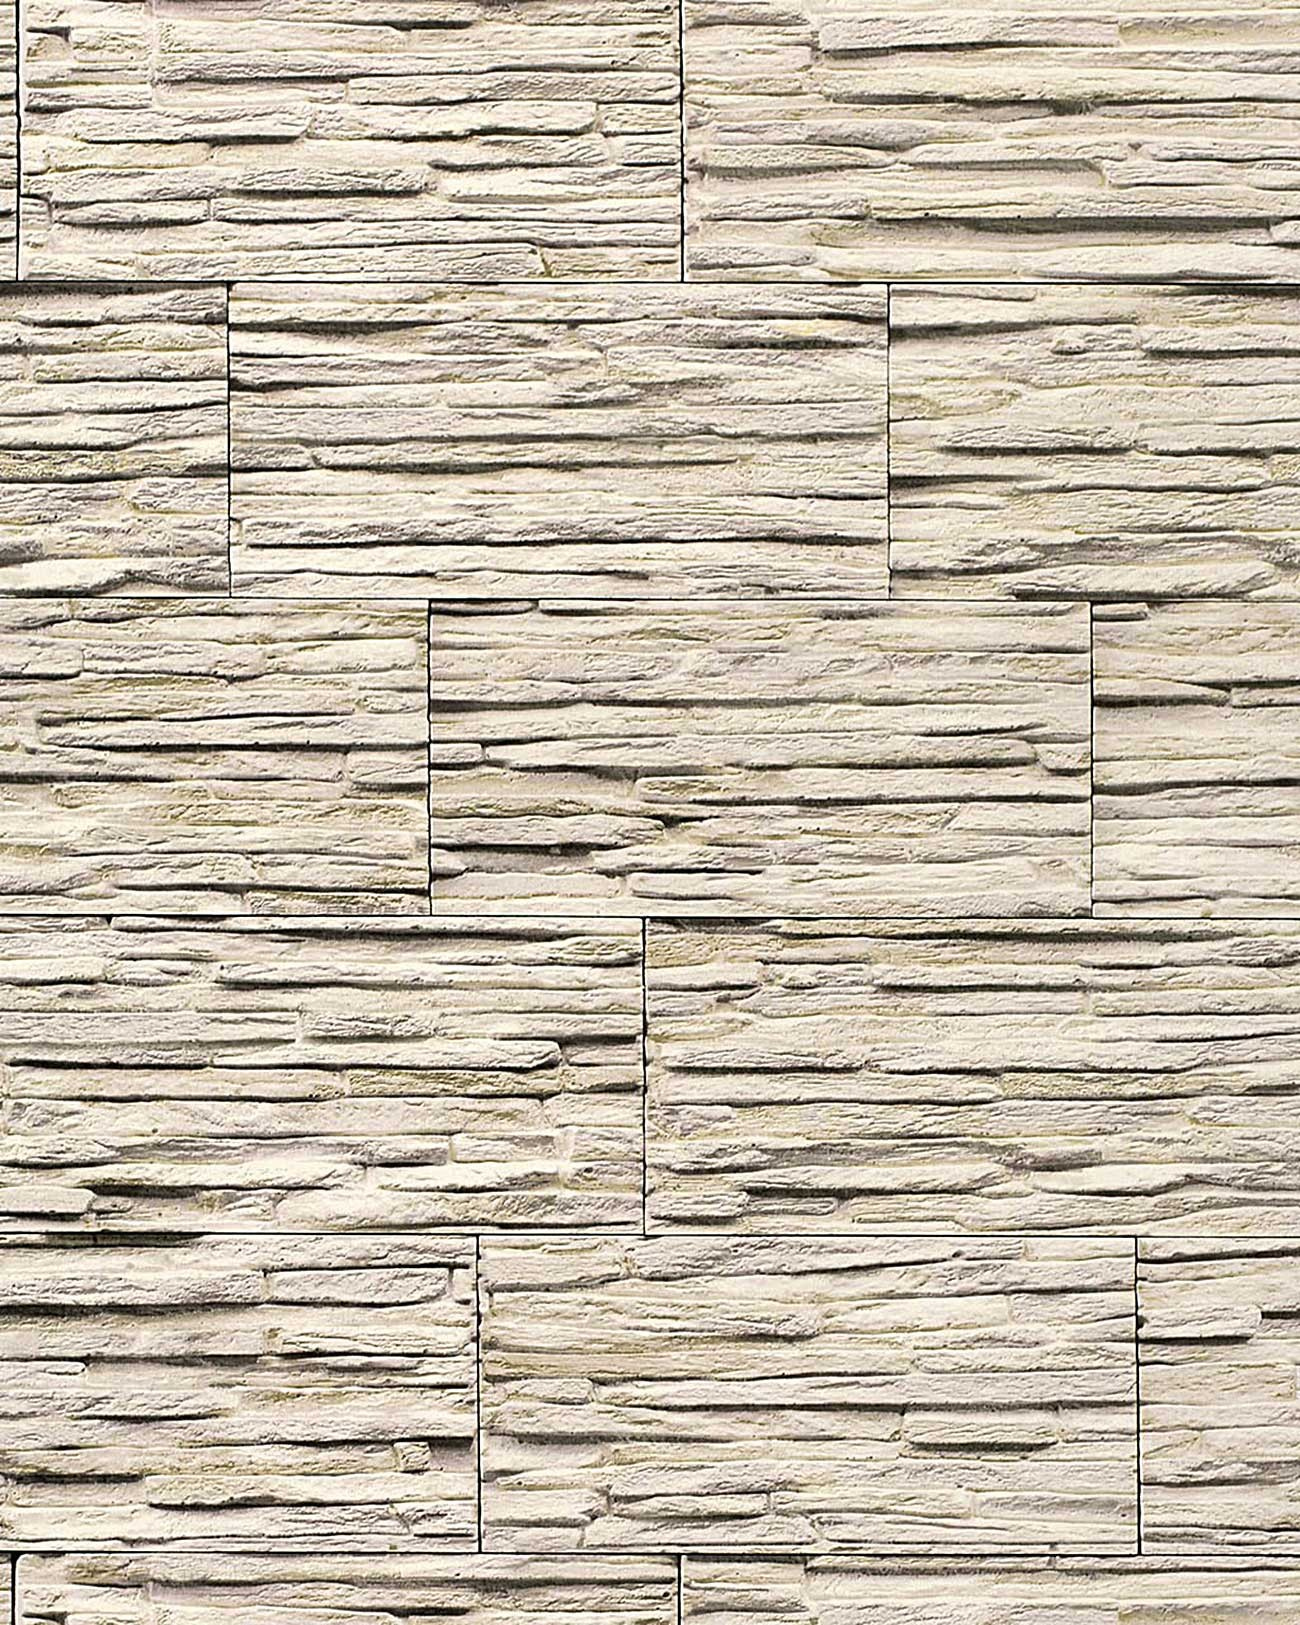 33 vinyl wallpaper textured stone natural brick light beige 57 sq feet 1300x1625